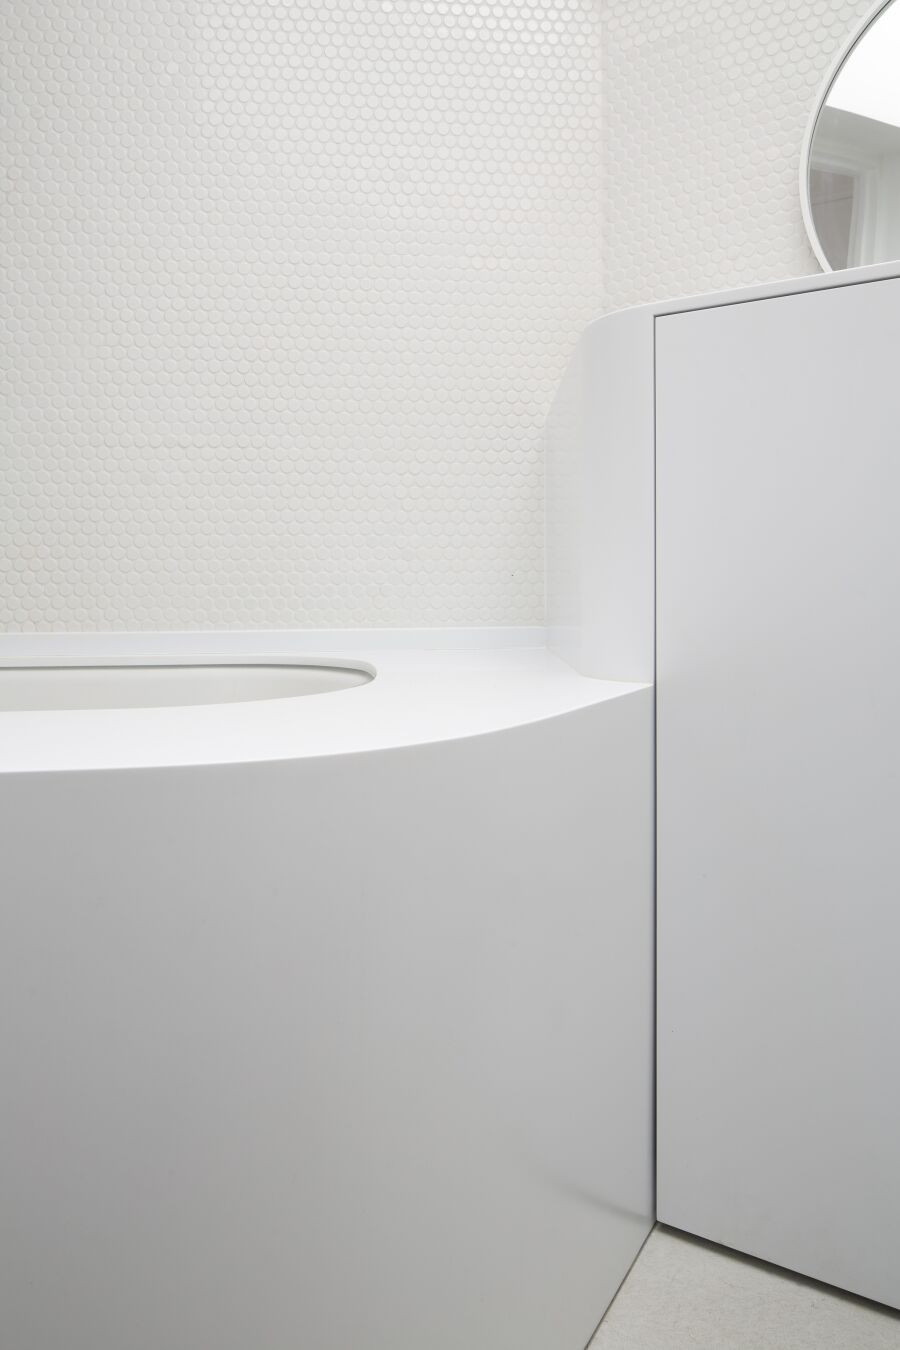 White curved Corian vanity unit and bath surround